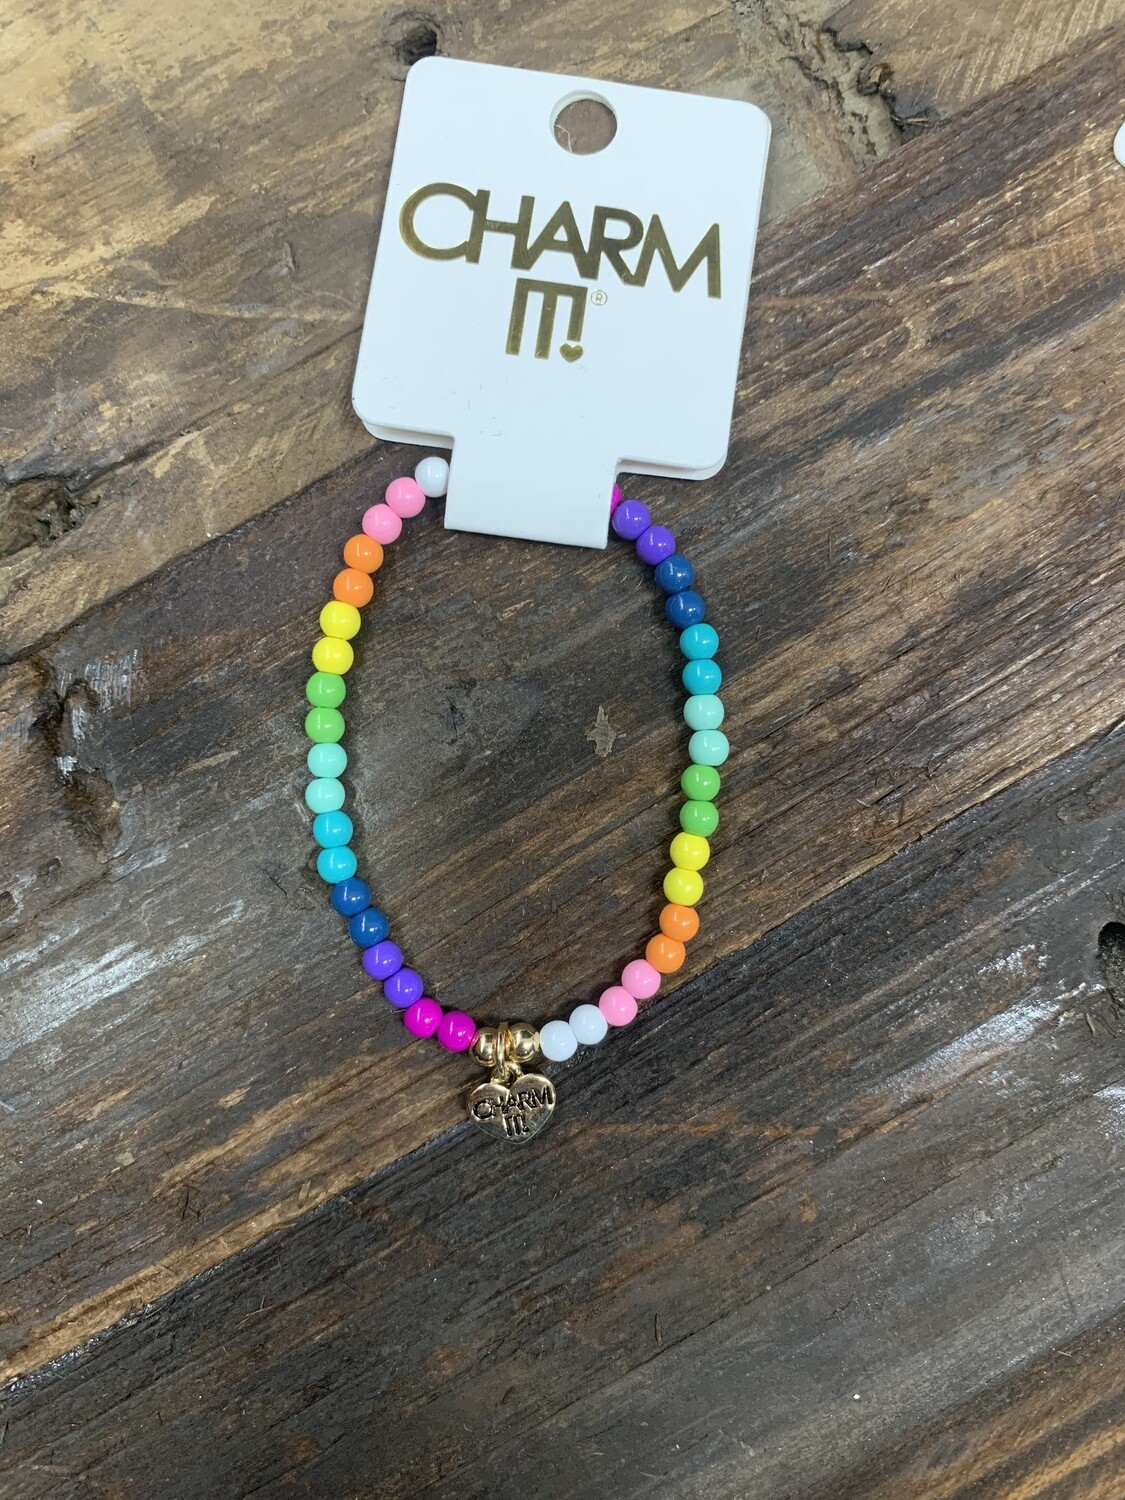 Charm Rainbow Stretch Bracelet